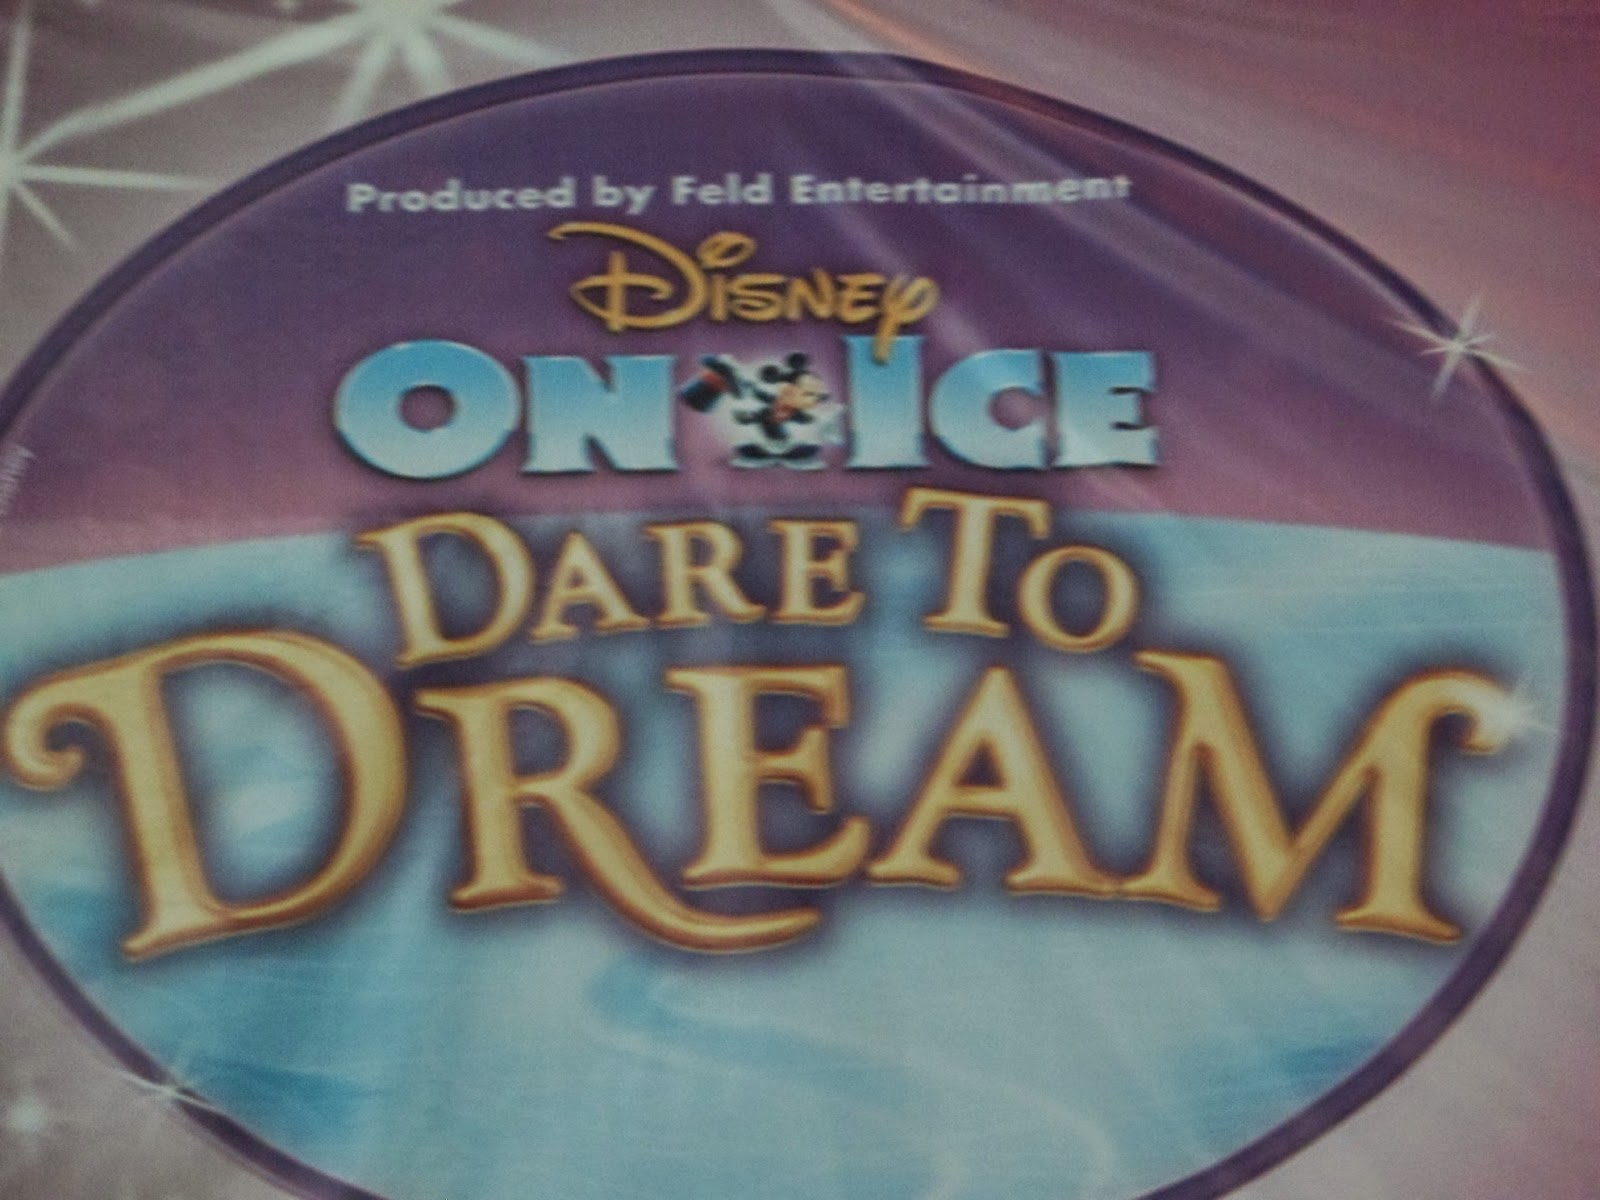 My Disney on Ice Dare to Dream Experienced